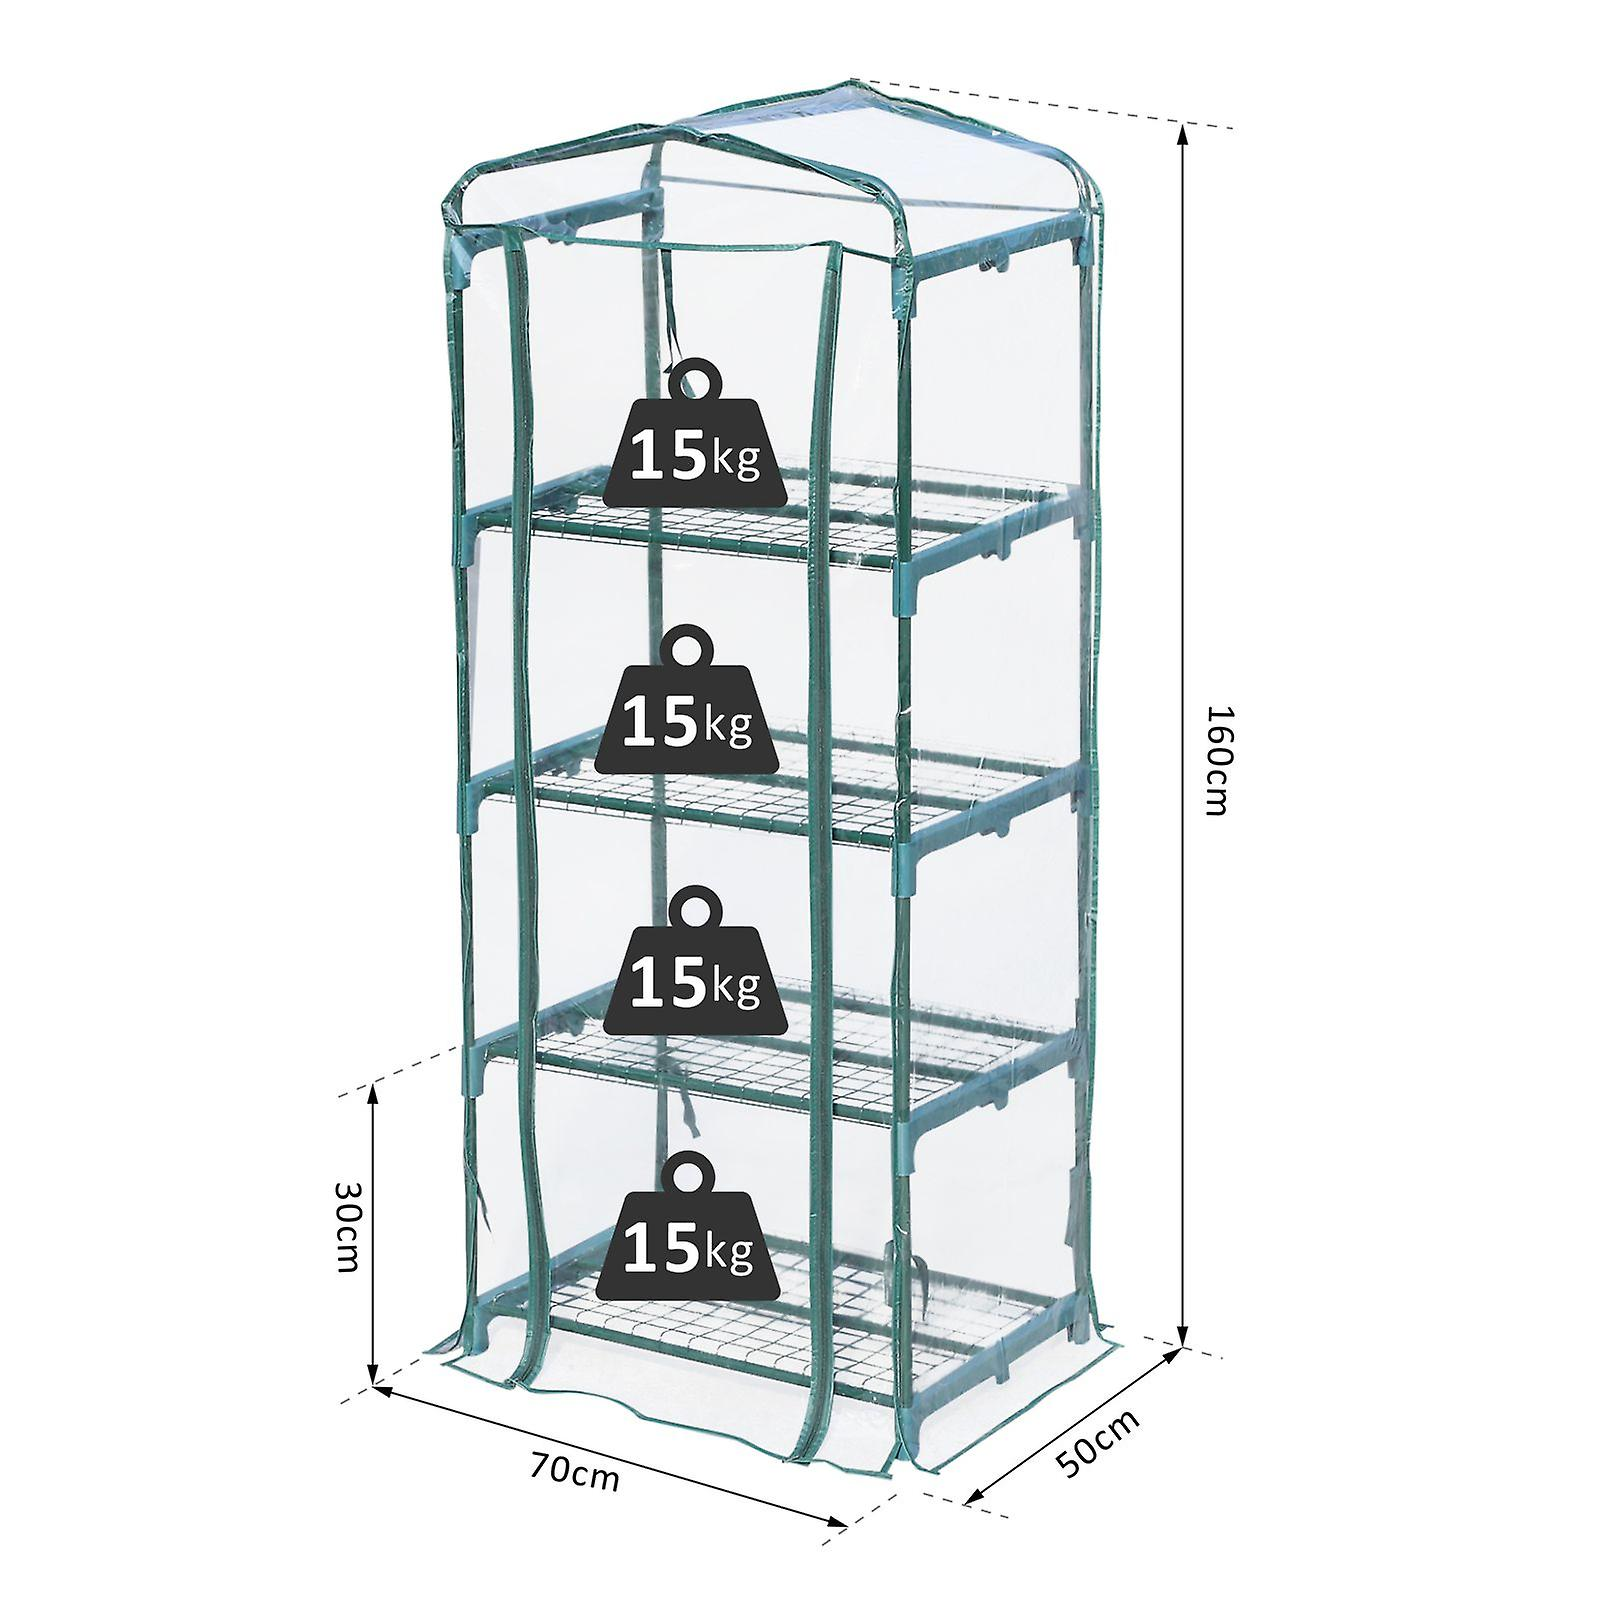 Outdoor Portable Greenhouse 4 Shelves Tier Garden Flower Plant Tall Clear Cover